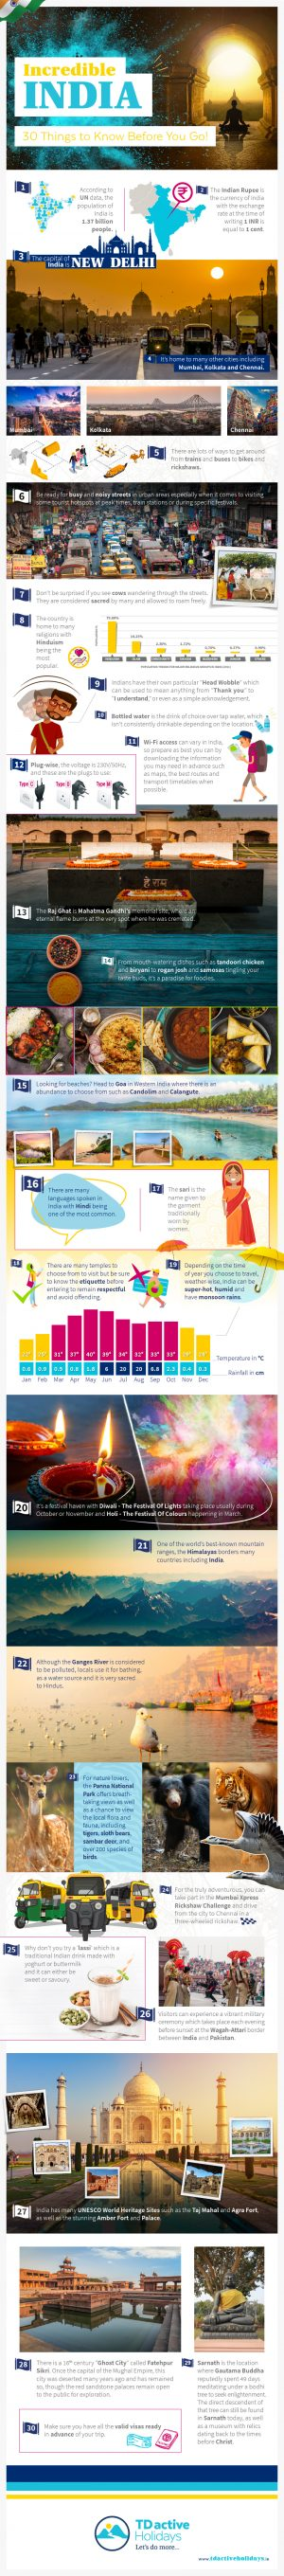 Incredible India - 30 Things to Know Before You Go